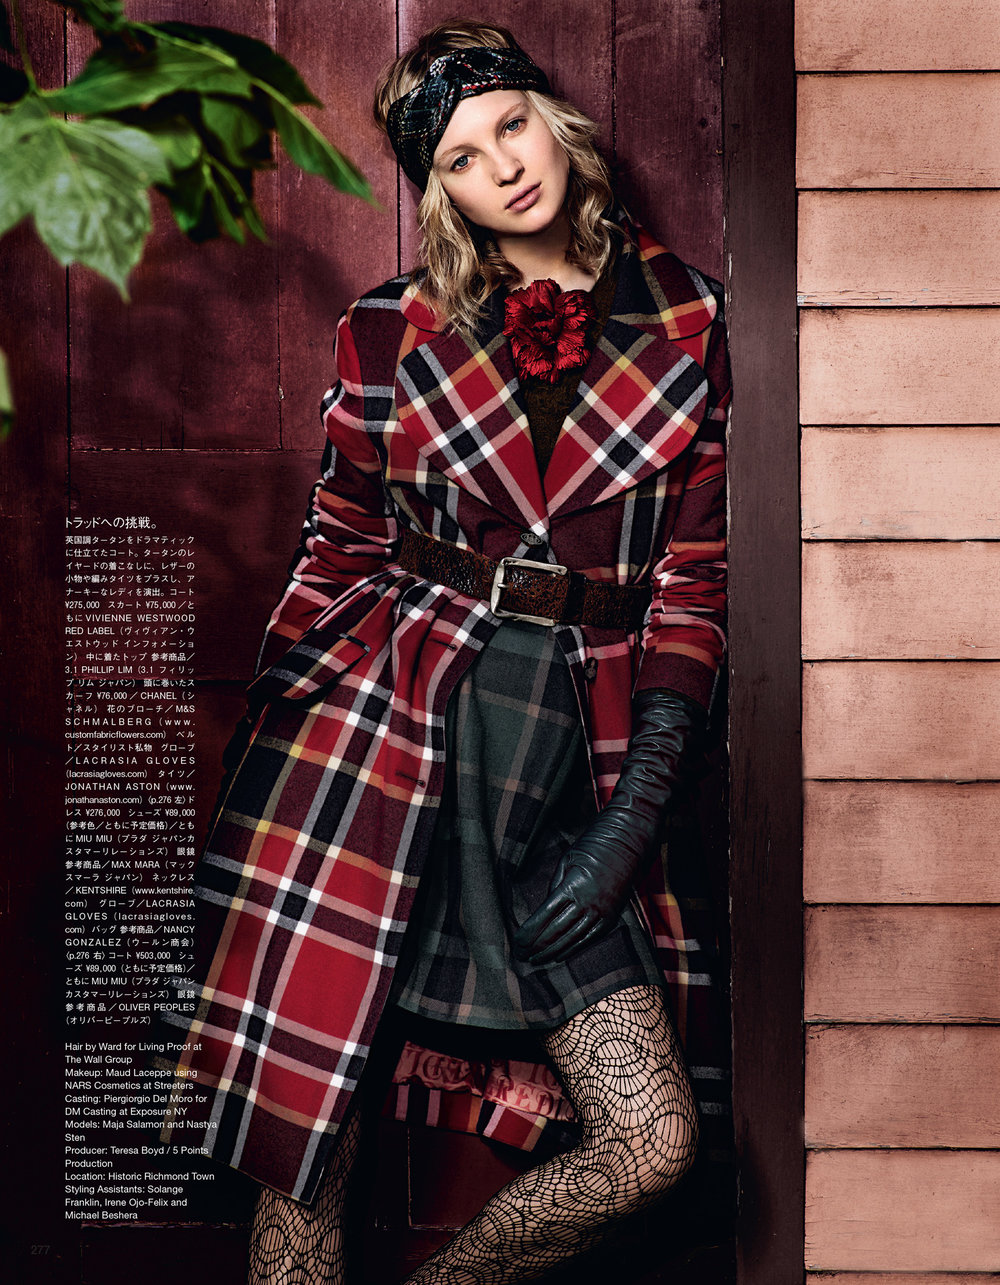 Giovanna-Battaglia-Into-the-Woods-Vogue-Japan-January-2016-8.jpg